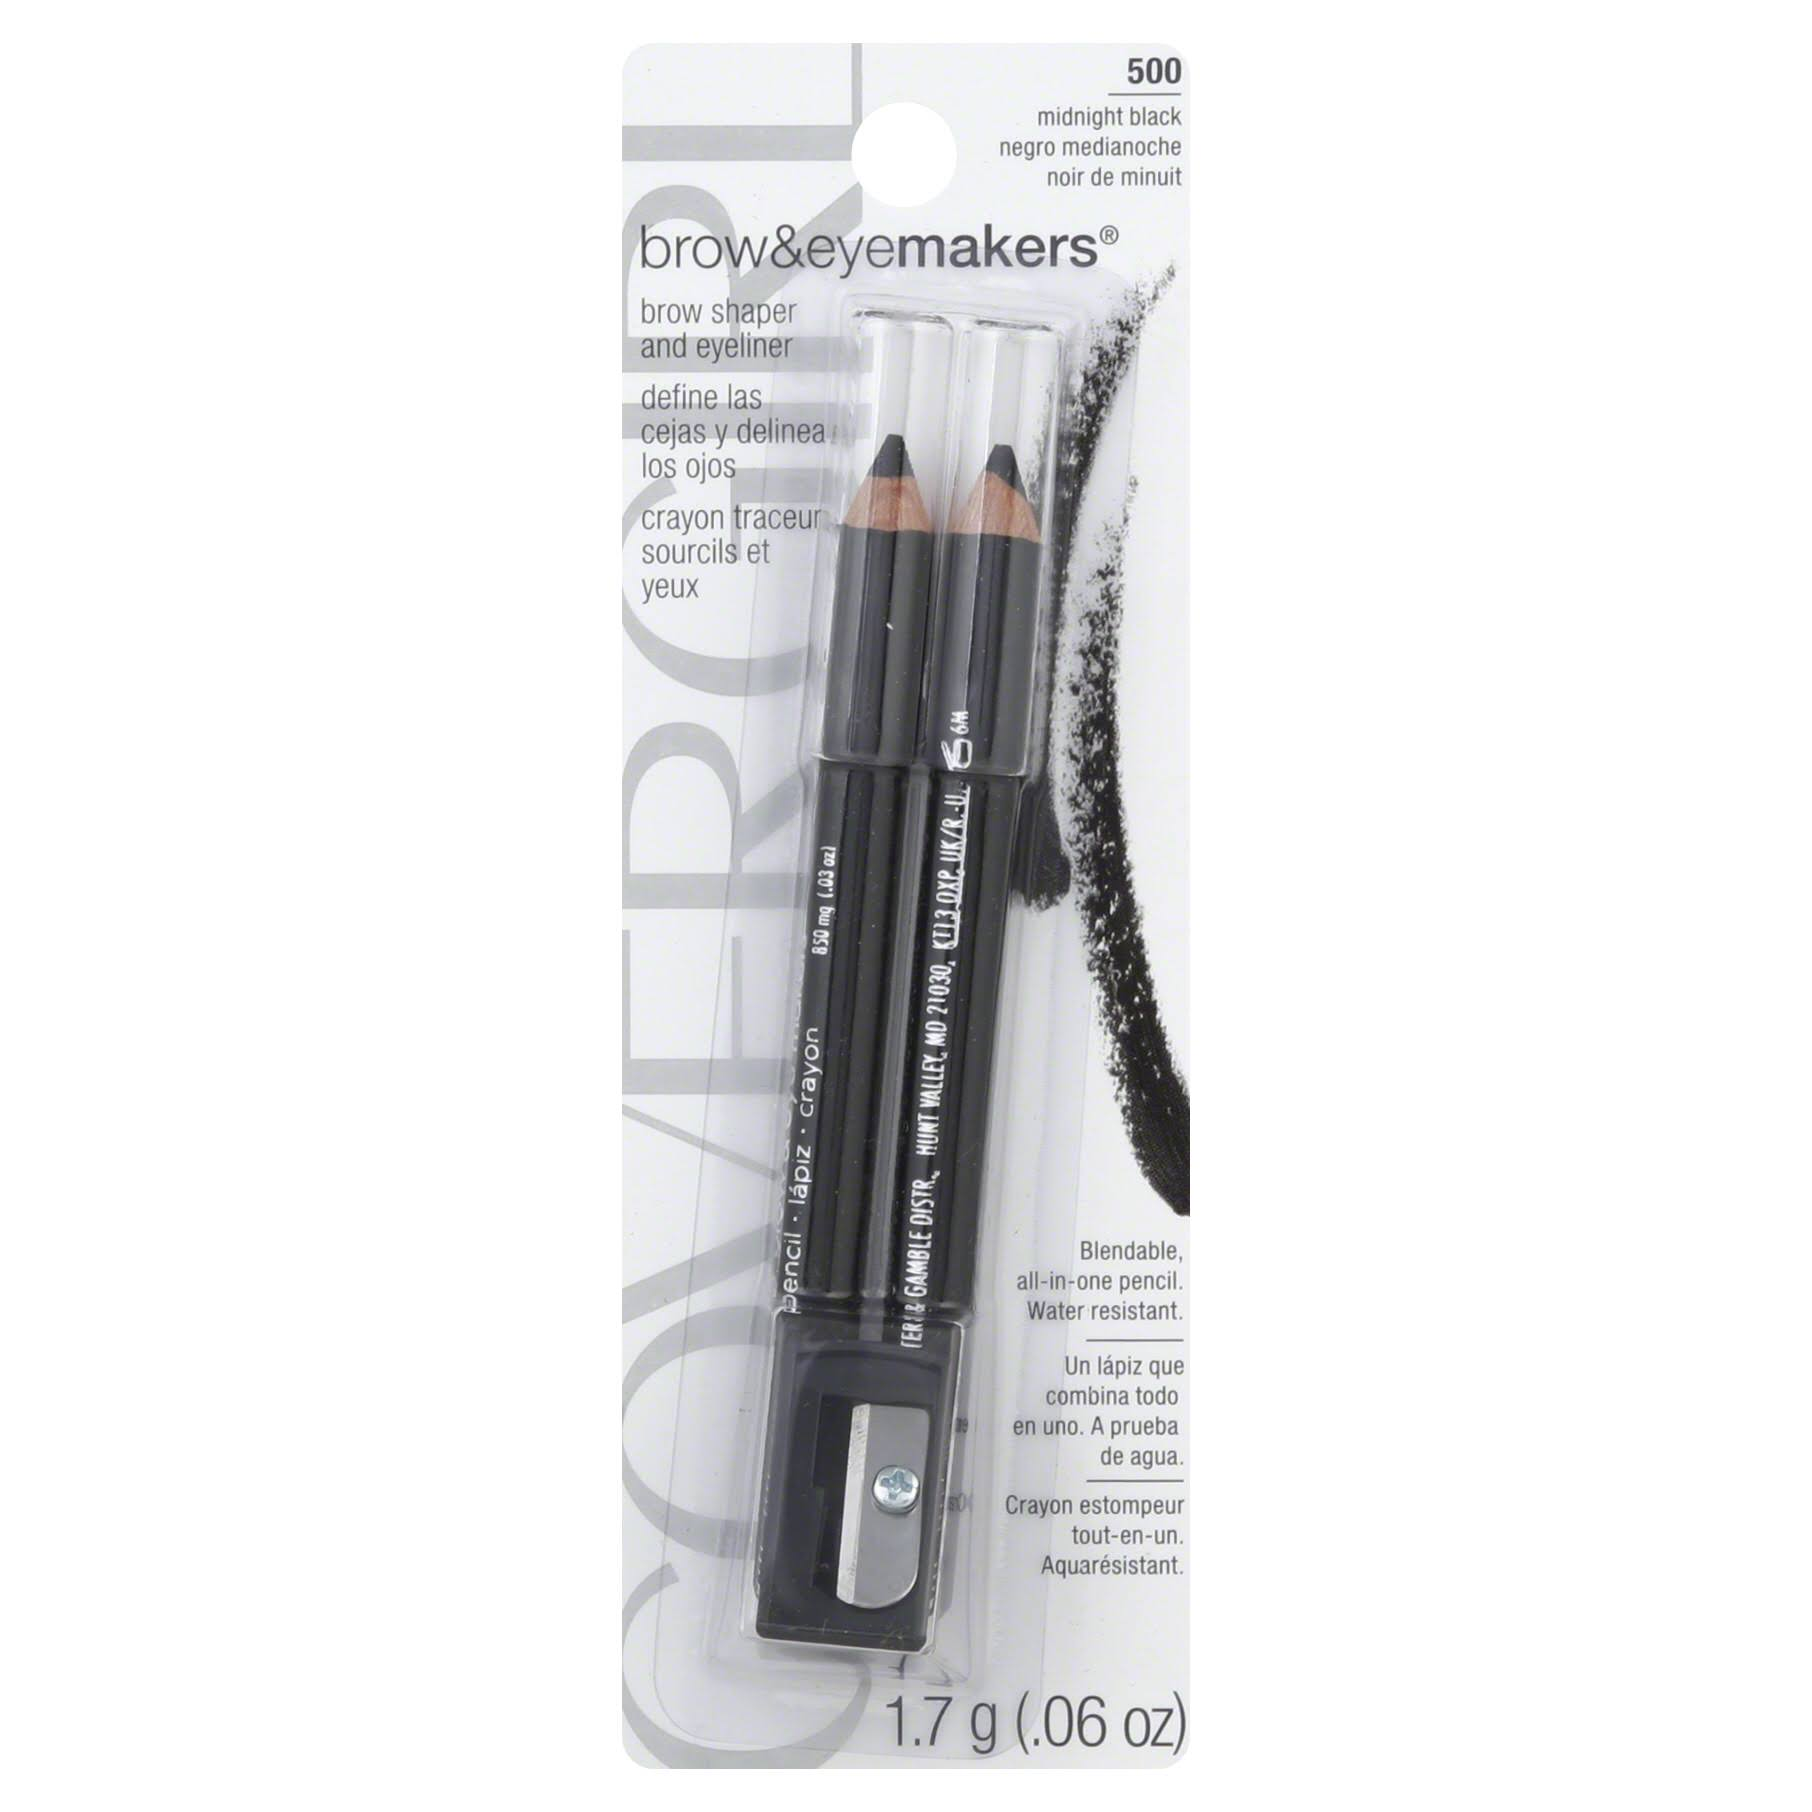 Covergirl Brow And Eye Makers Pencil - 500 Midnightblack, x2